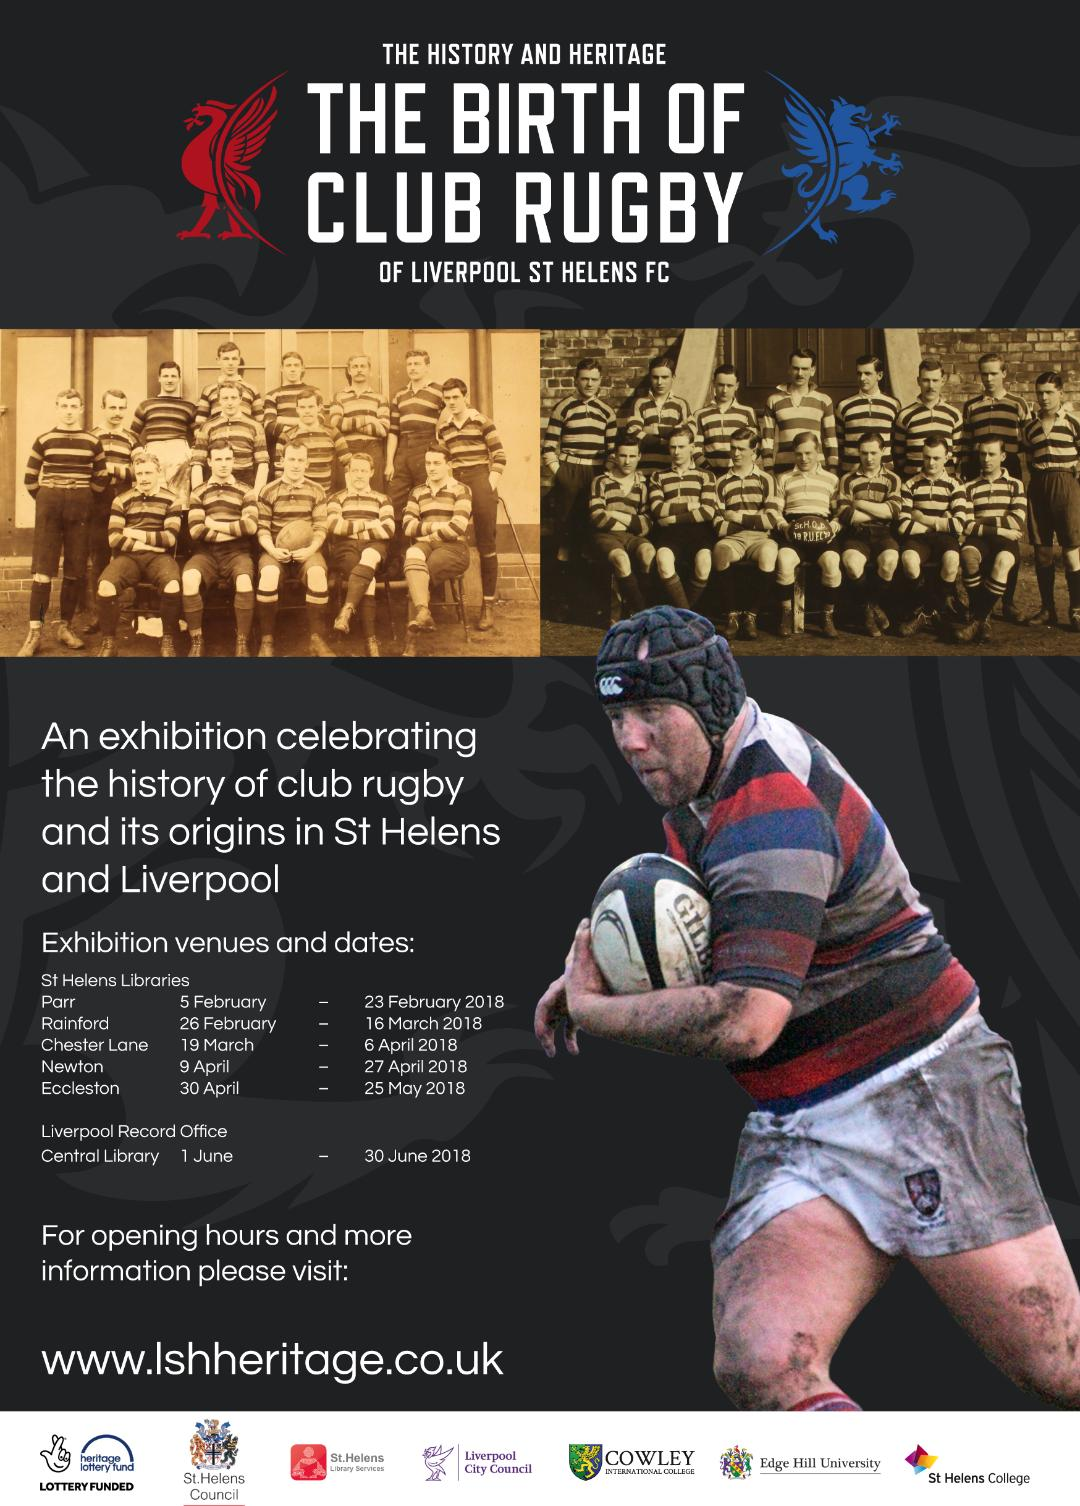 Liverpool St Helens stage 'The Birth of Club Rugby' exhibition across town's libraries